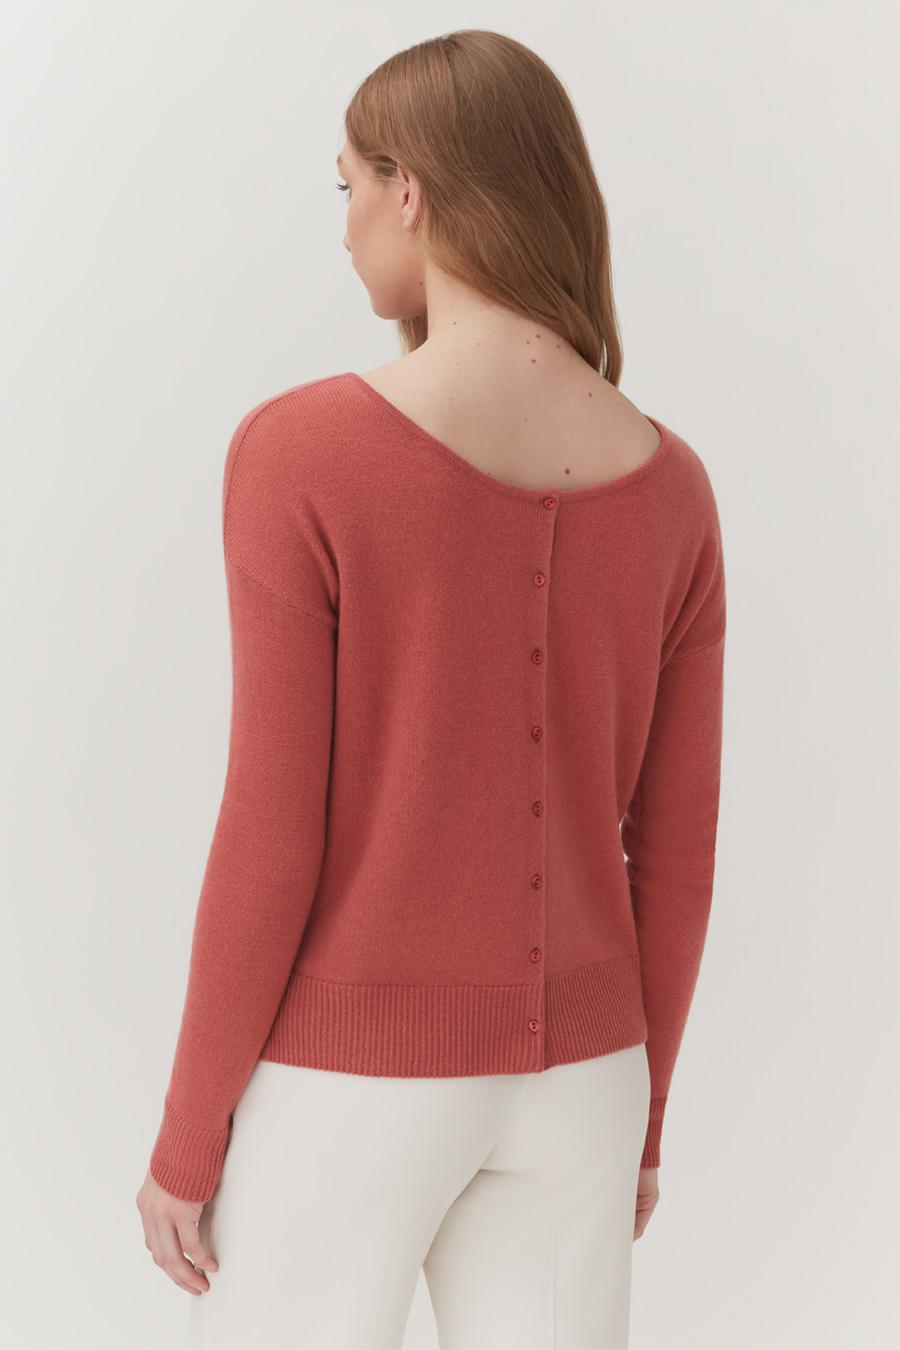 Women's Cardigan in Passion Fruit   Size: 3